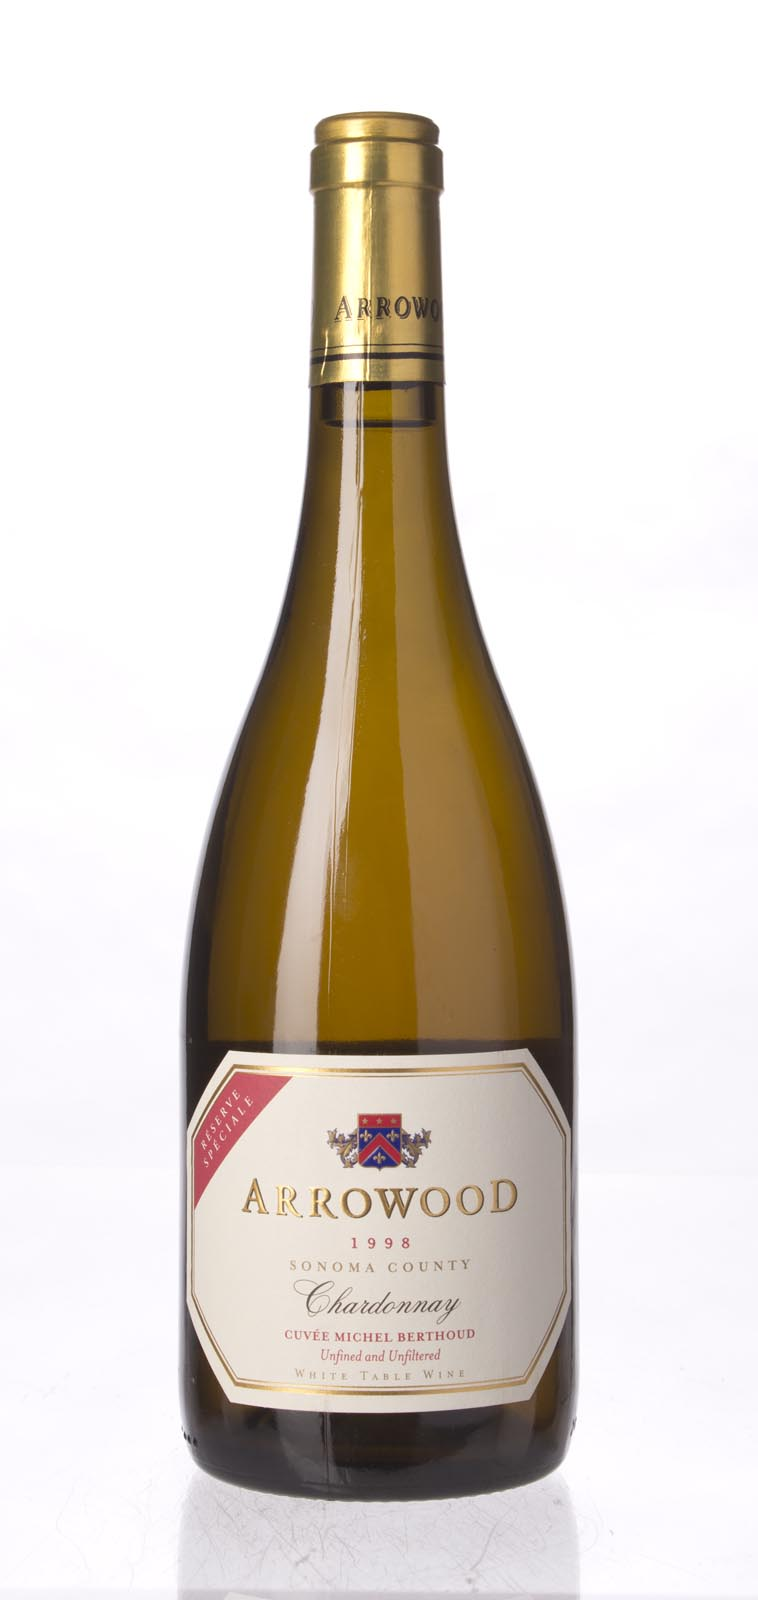 Arrowood Chardonnay Reserve Speciale Cuvee Michel Berthoud 1998, 750ml (WA89) from The BPW - Merchants of rare and fine wines.